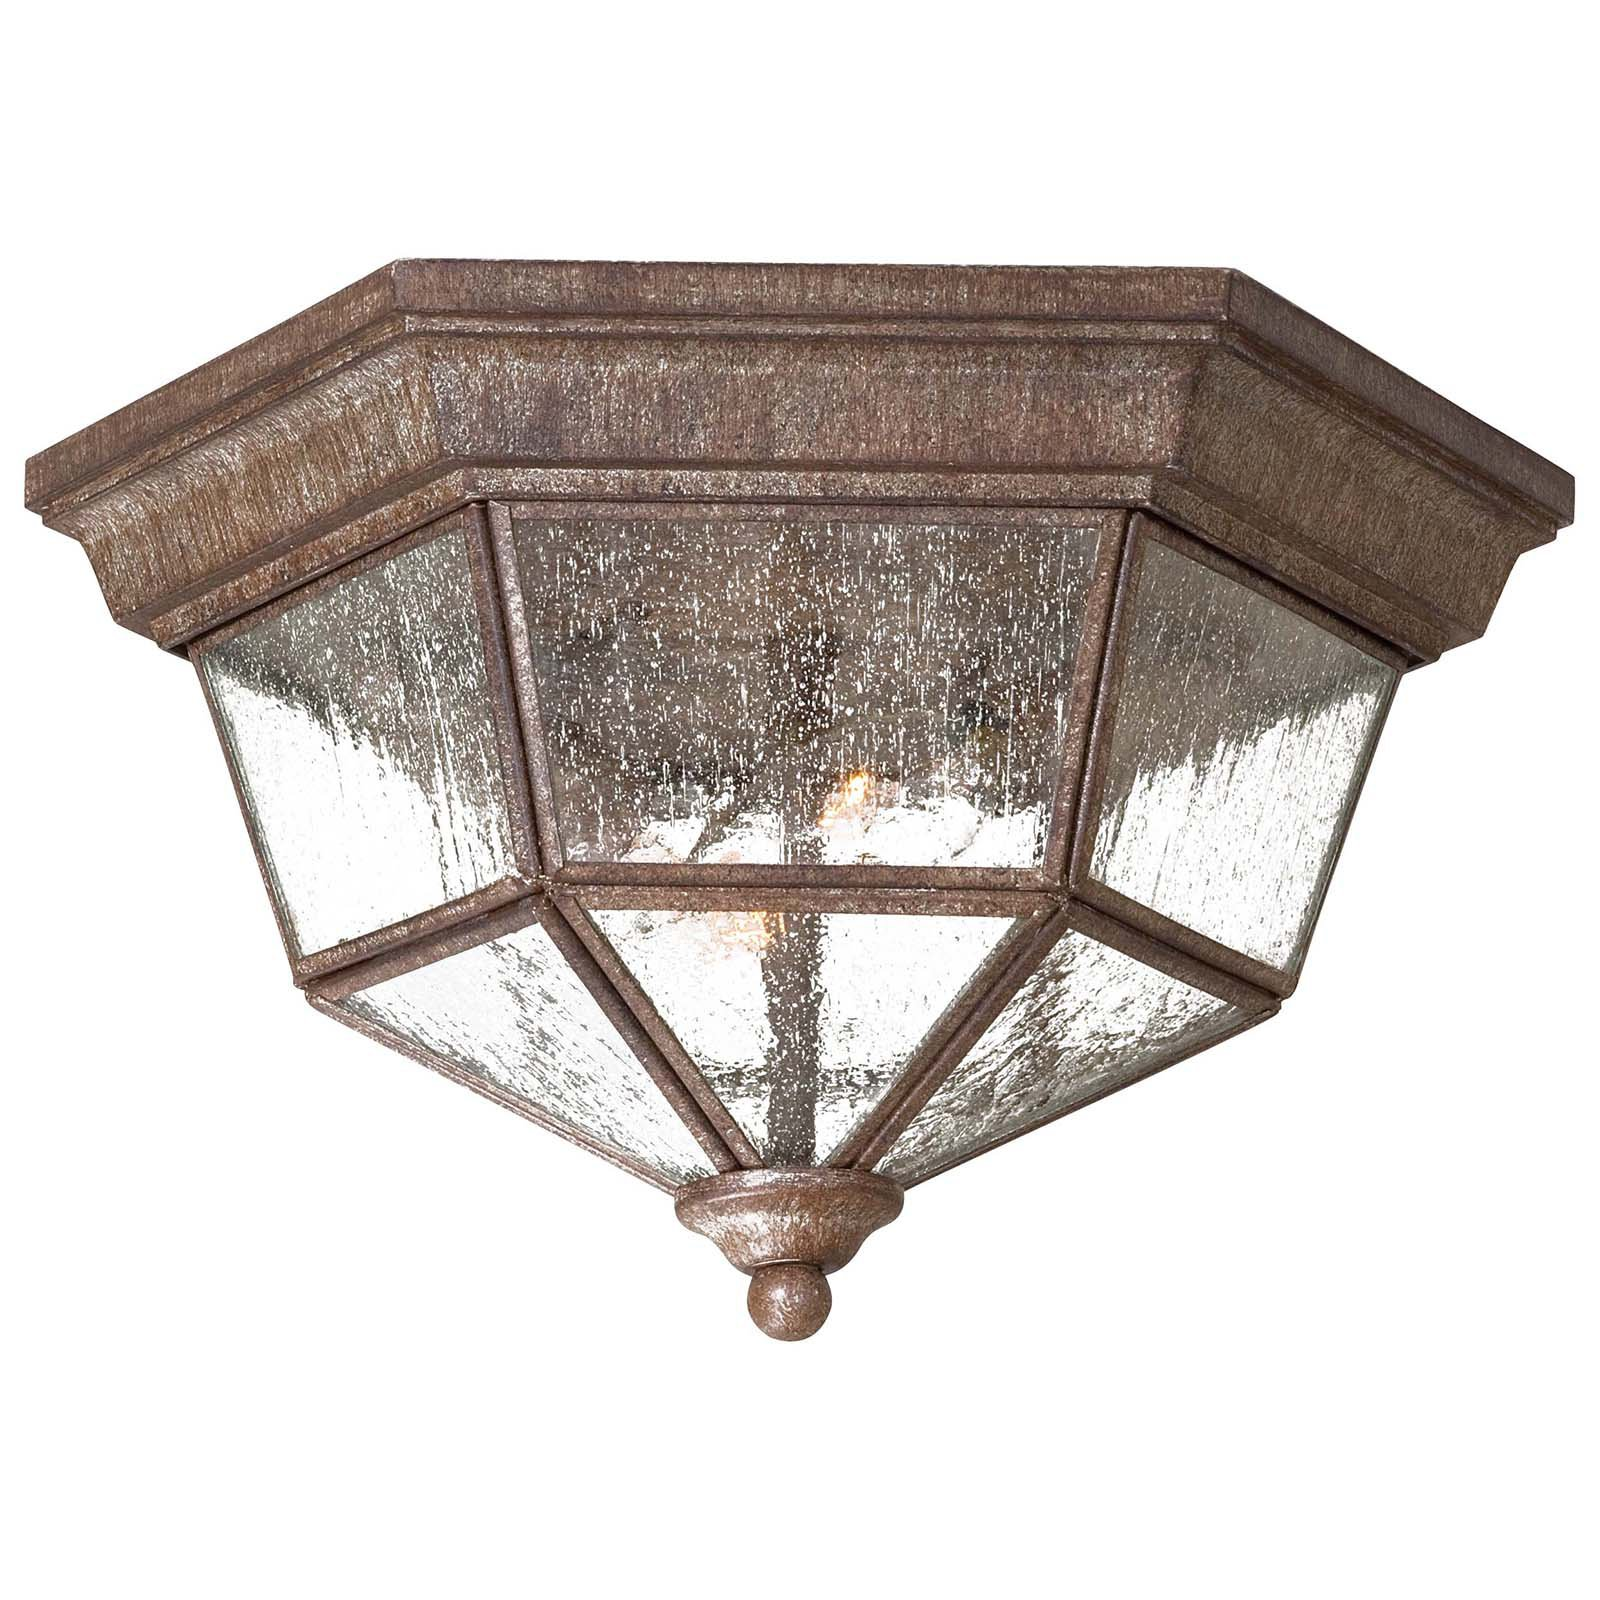 Minka Lavery Taylor Court 8619-A61 Outdoor Flush Mount Light